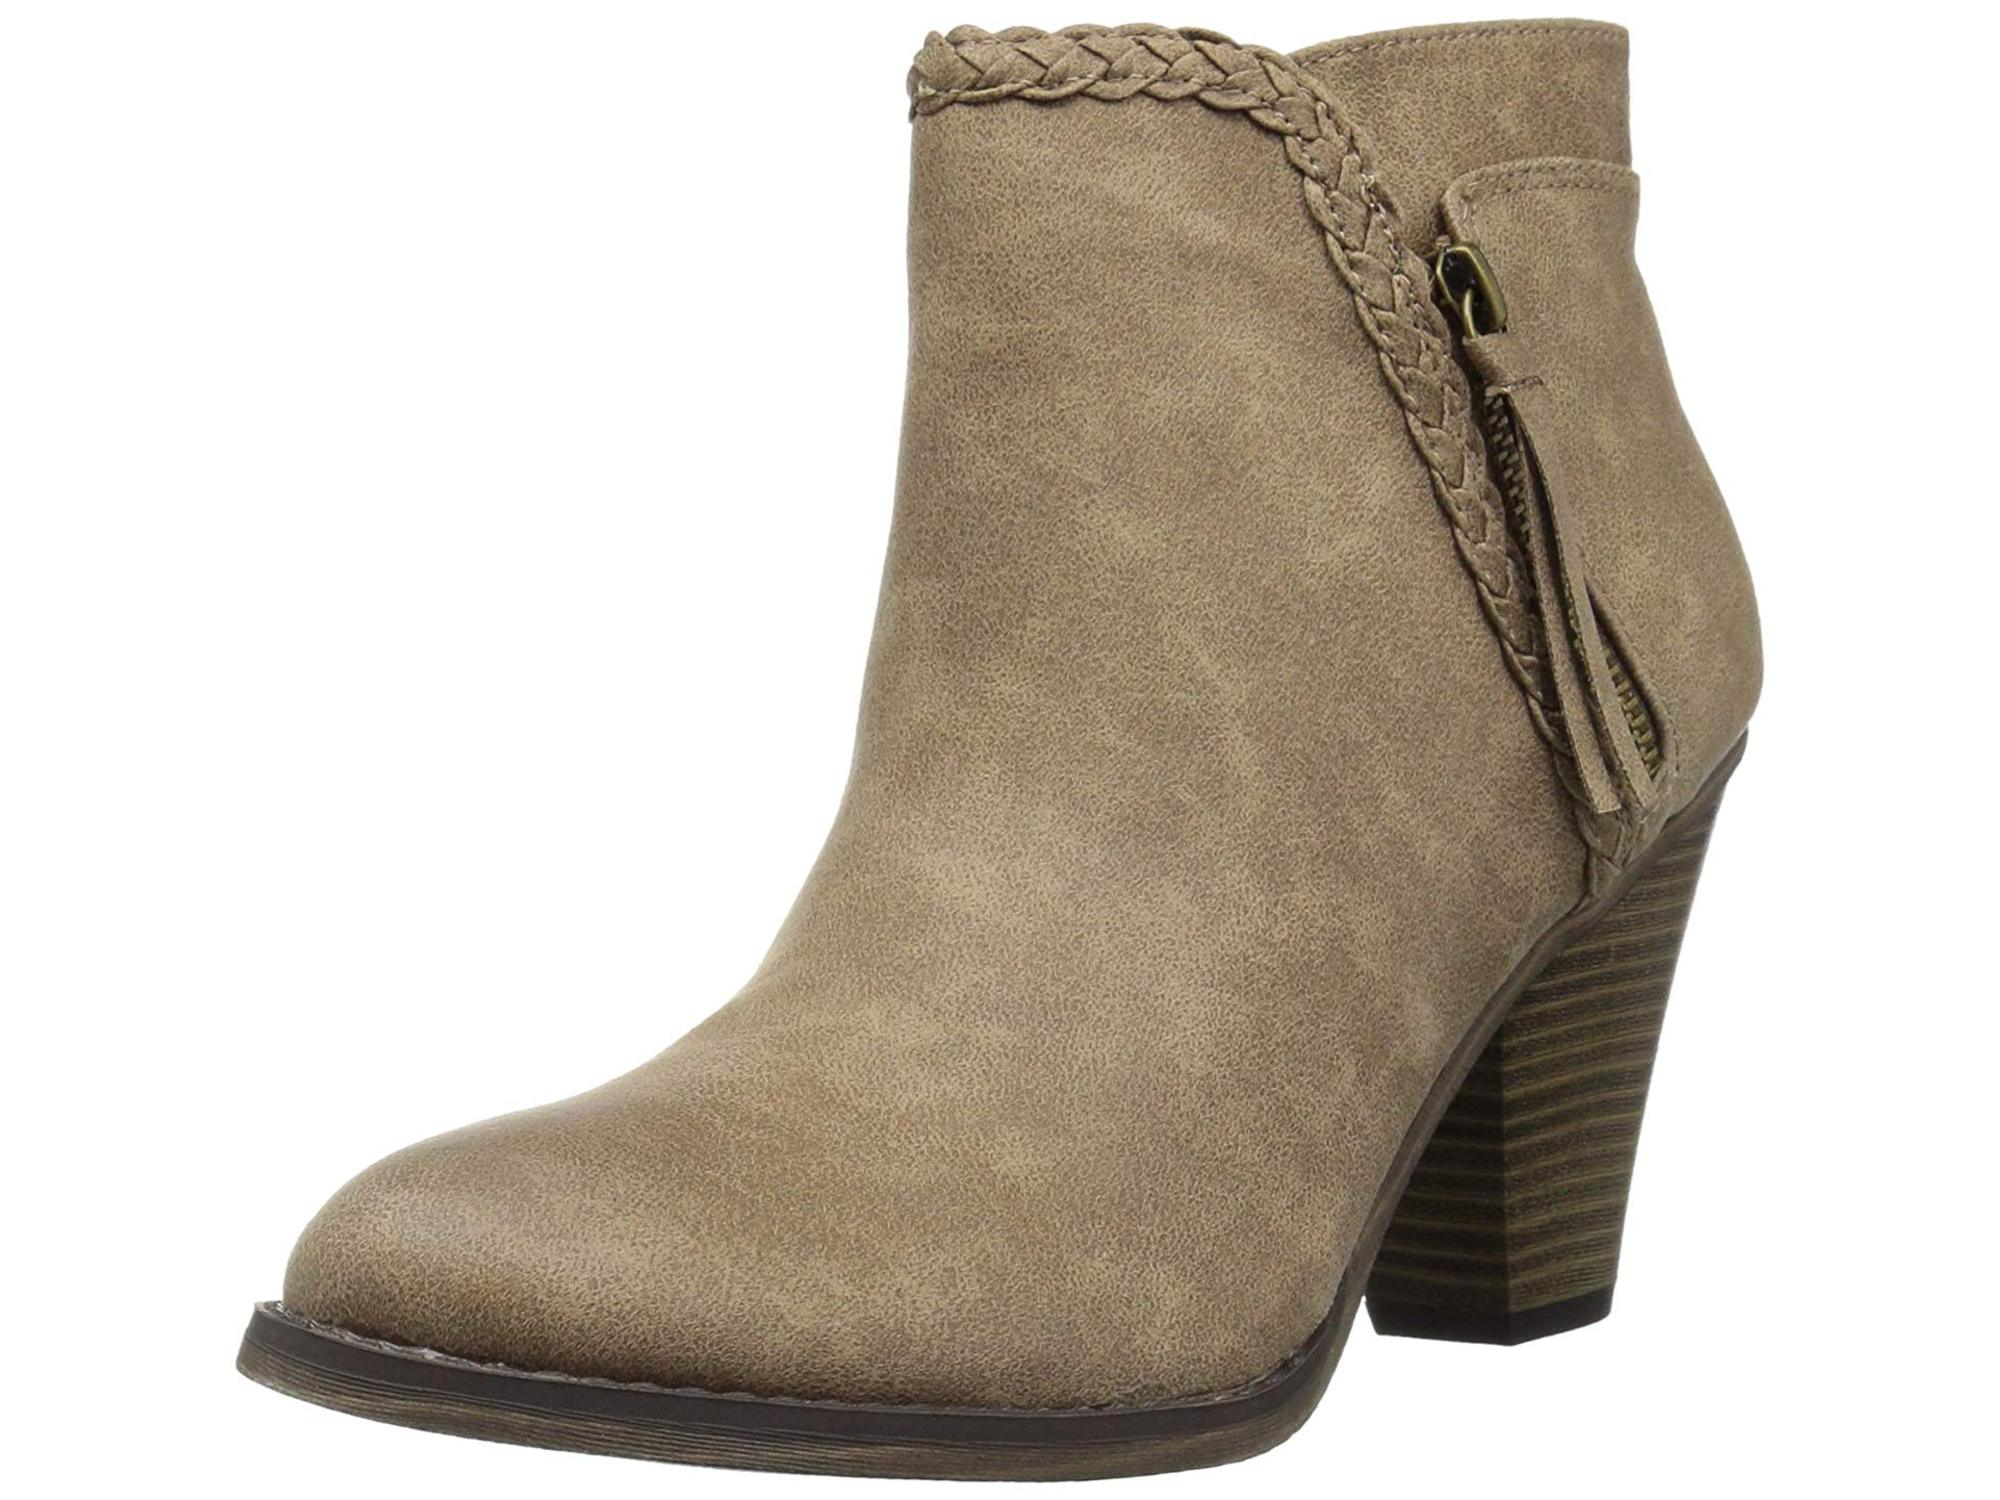 Details about  /Women/'s Girls Snow Comfort Comfort College Wedge Low Heel Pull On Ankle Boots D